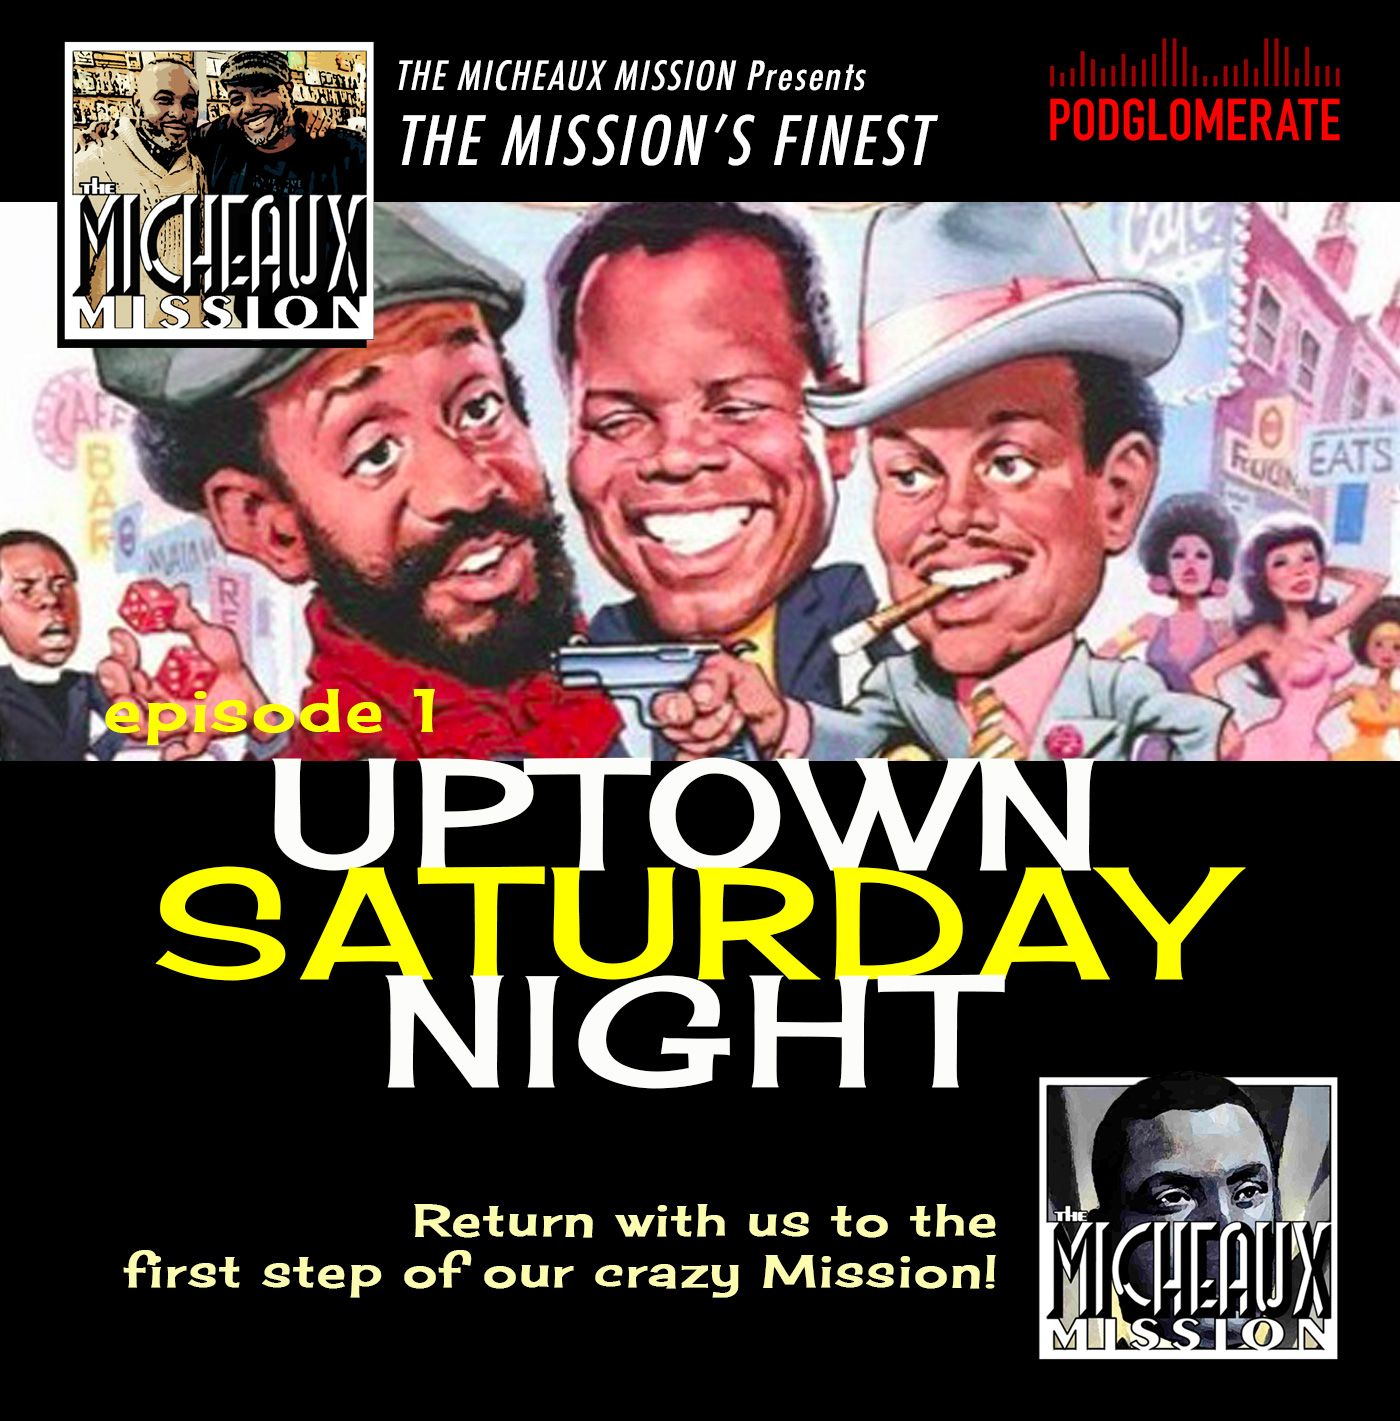 MISSION FINEST - Uptown Saturday Night (1974)